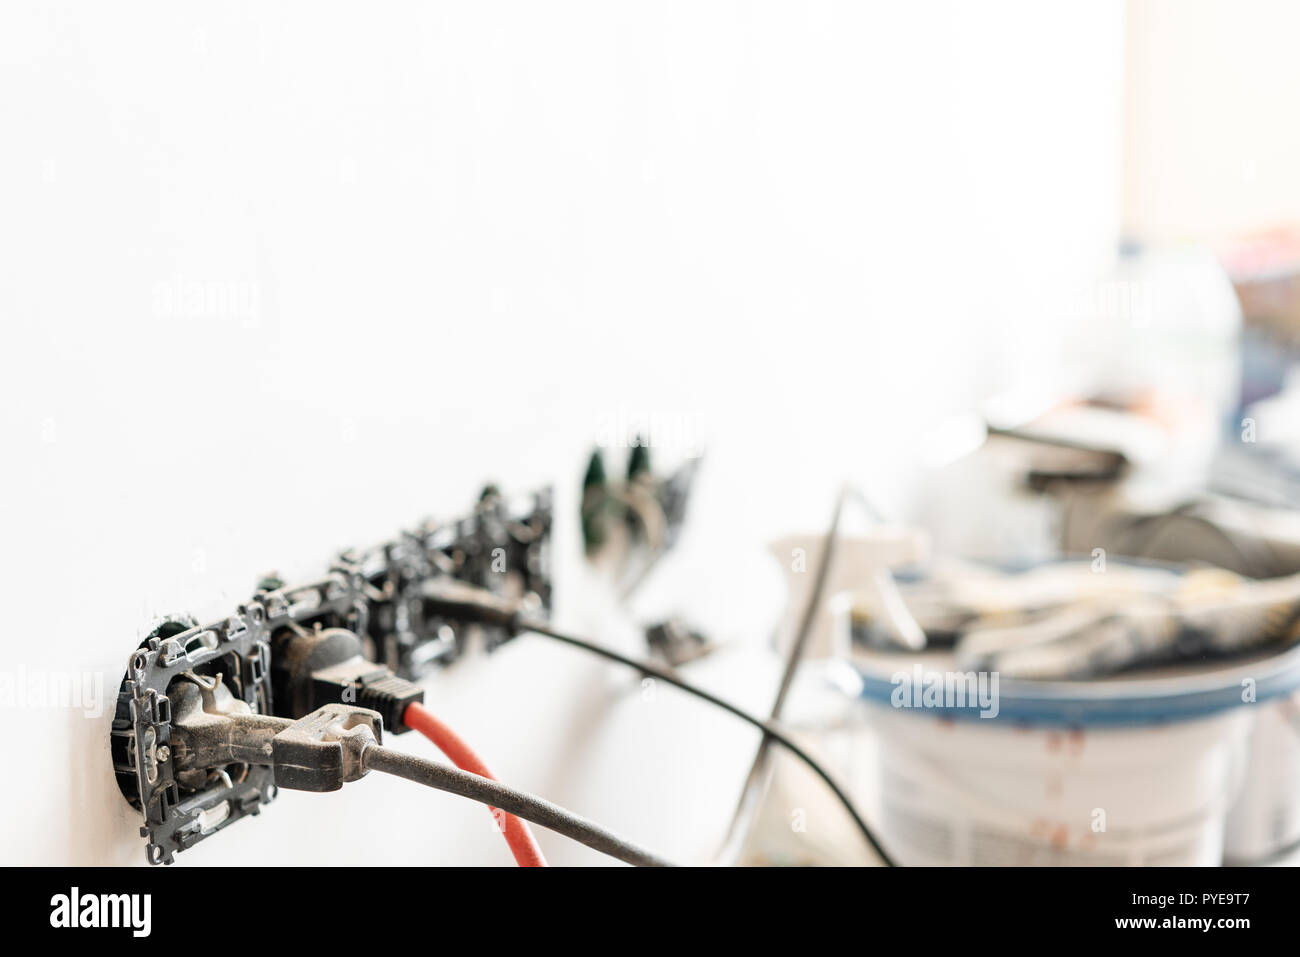 Wiring Tools Stock Photos Images Alamy House Lots Of And Cans Paint In The Background